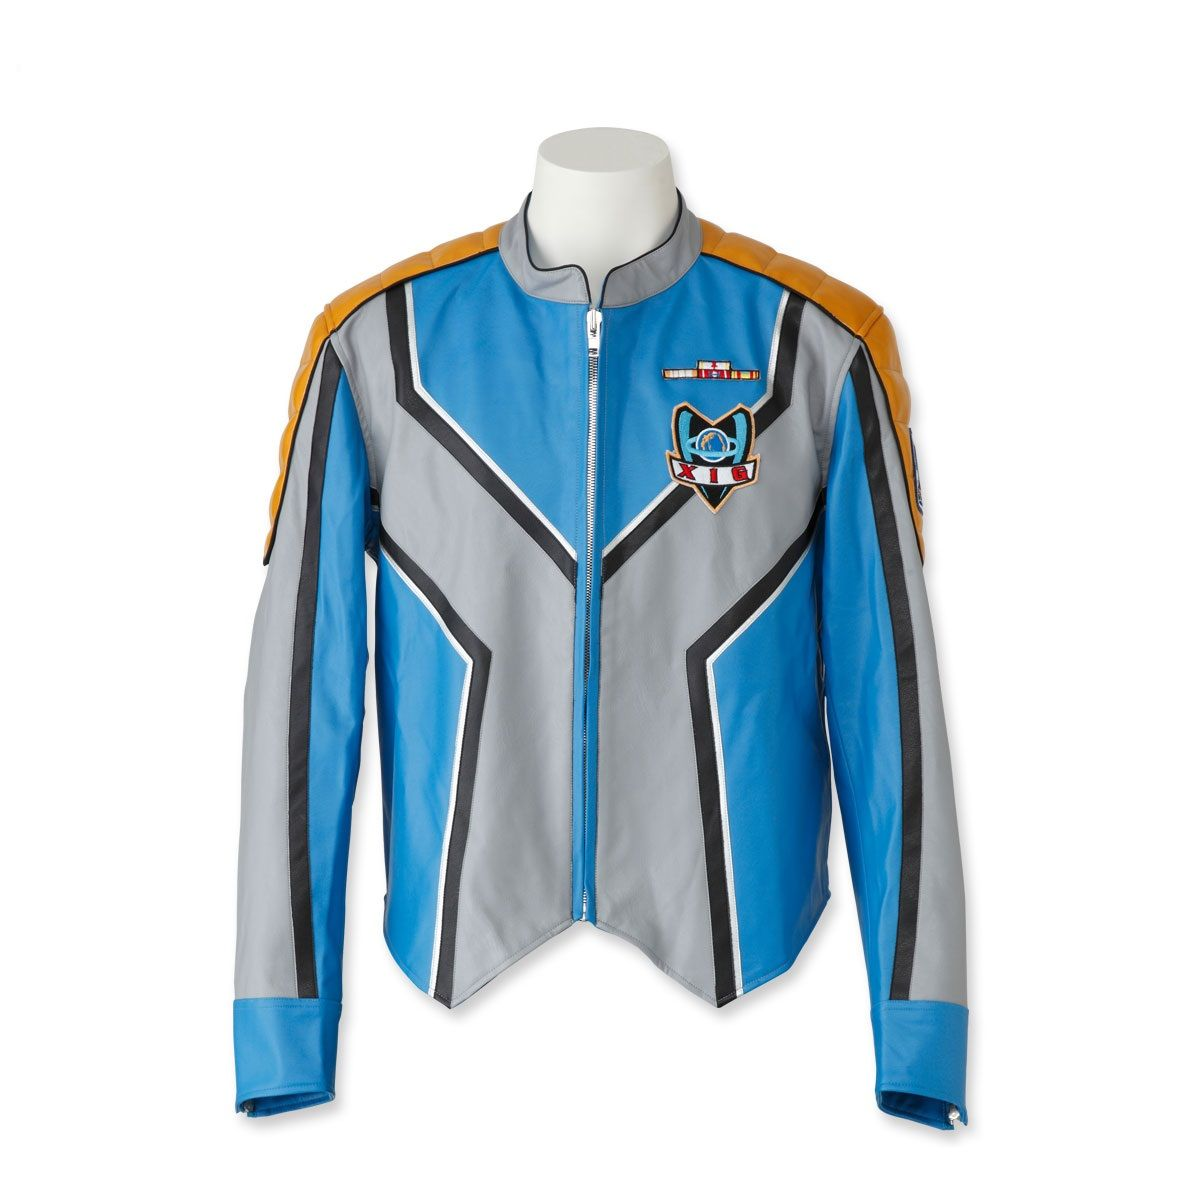 Ultraman Gaia XIG Uniform Jacket